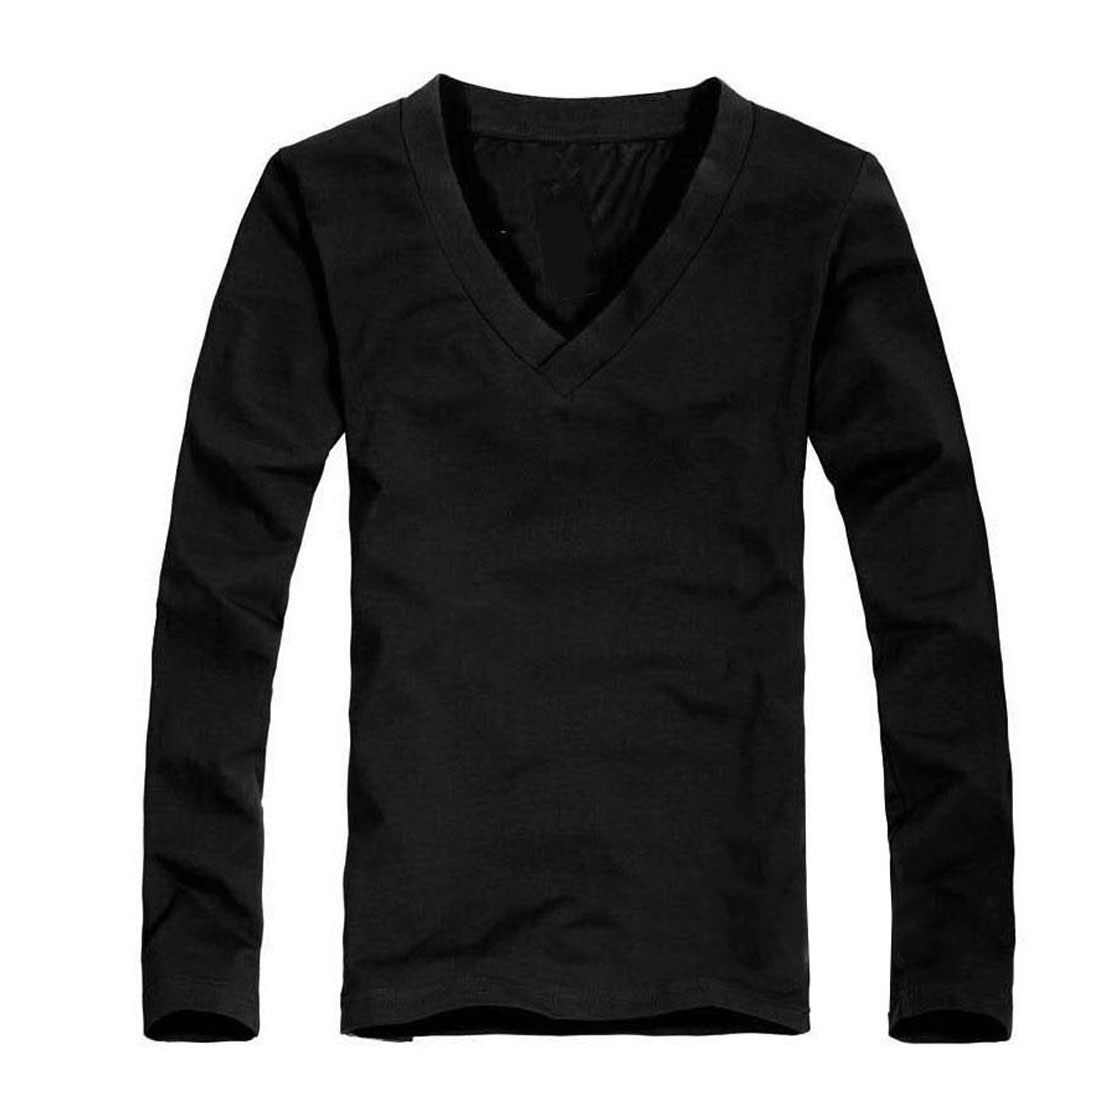 Mens Black V Neckline Long Sleeves Pullover Stretchy Shirt S